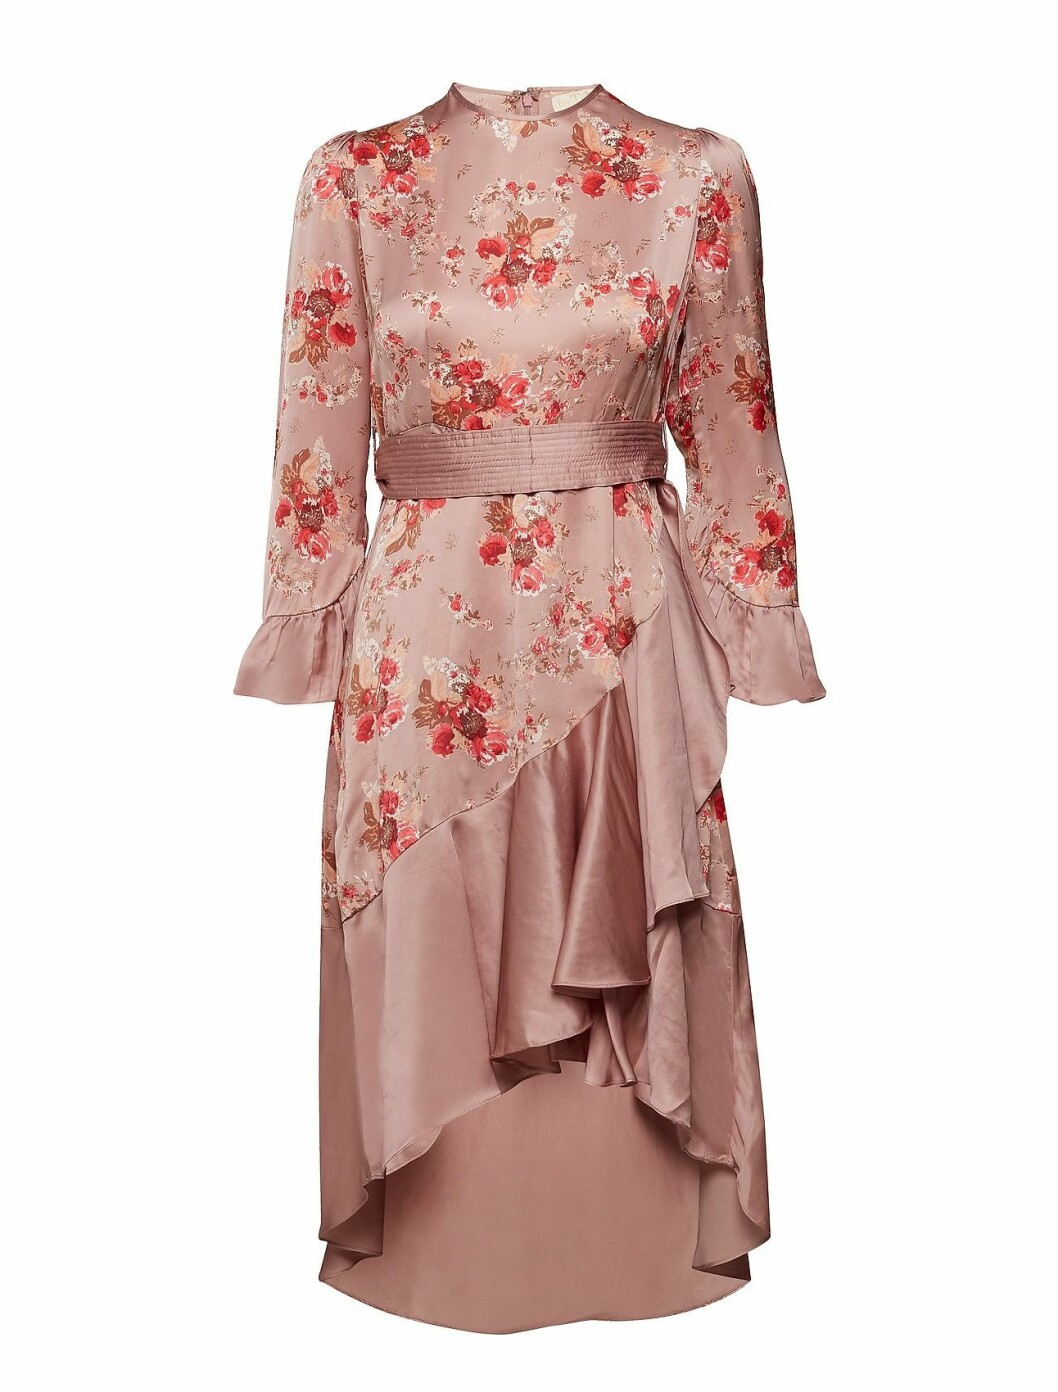 Kjole fra byTiMo  2599,-  https://www.boozt.com/no/no/by-ti-mo/block-belted-dress_18249451/18249456?navId=67362&group=listing&position=1000000